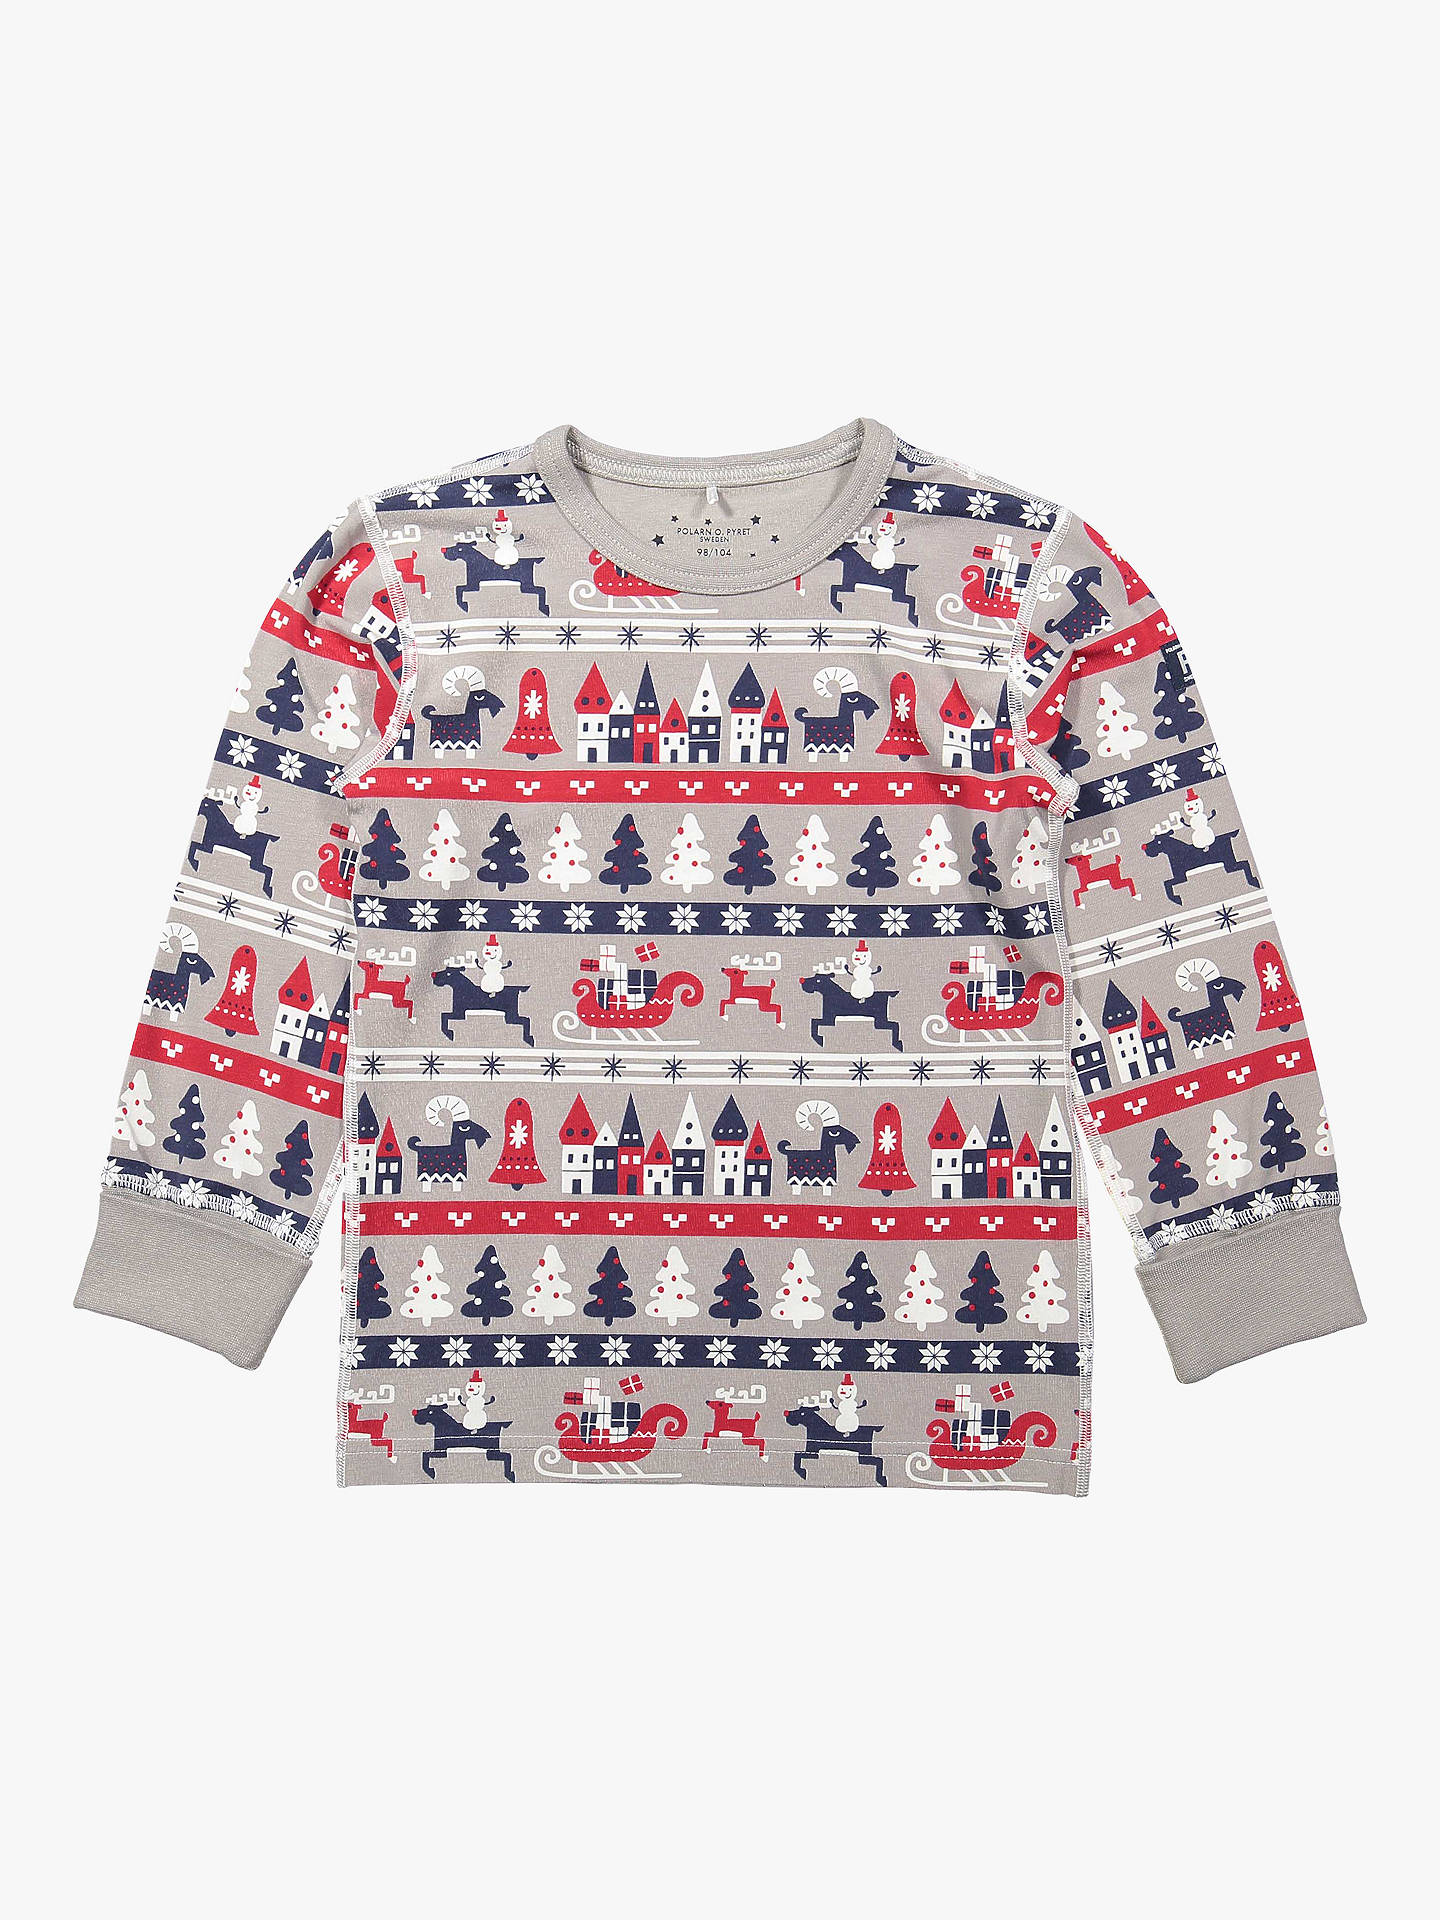 BuyPolarn O. Pyret Children's GOTS Organic Cotton Christmas Pyjamas, Grey, 2-4 years Online at johnlewis.com